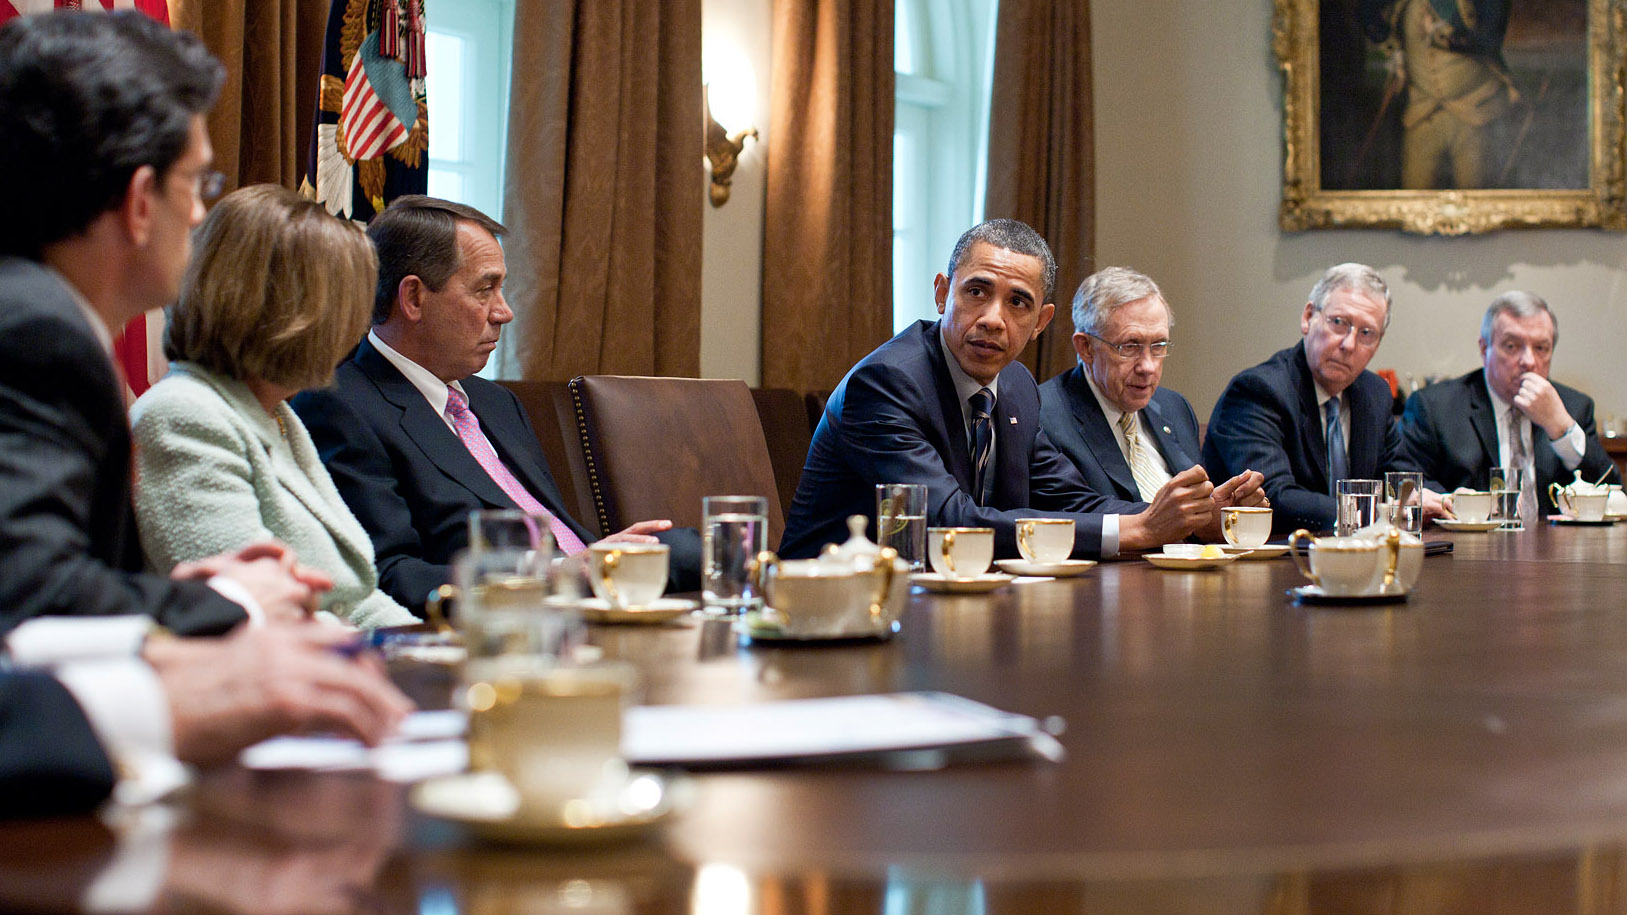 Obama And Cabinet A Meeting With Bipartisan Leadership On Fiscal Policy Whitehousegov